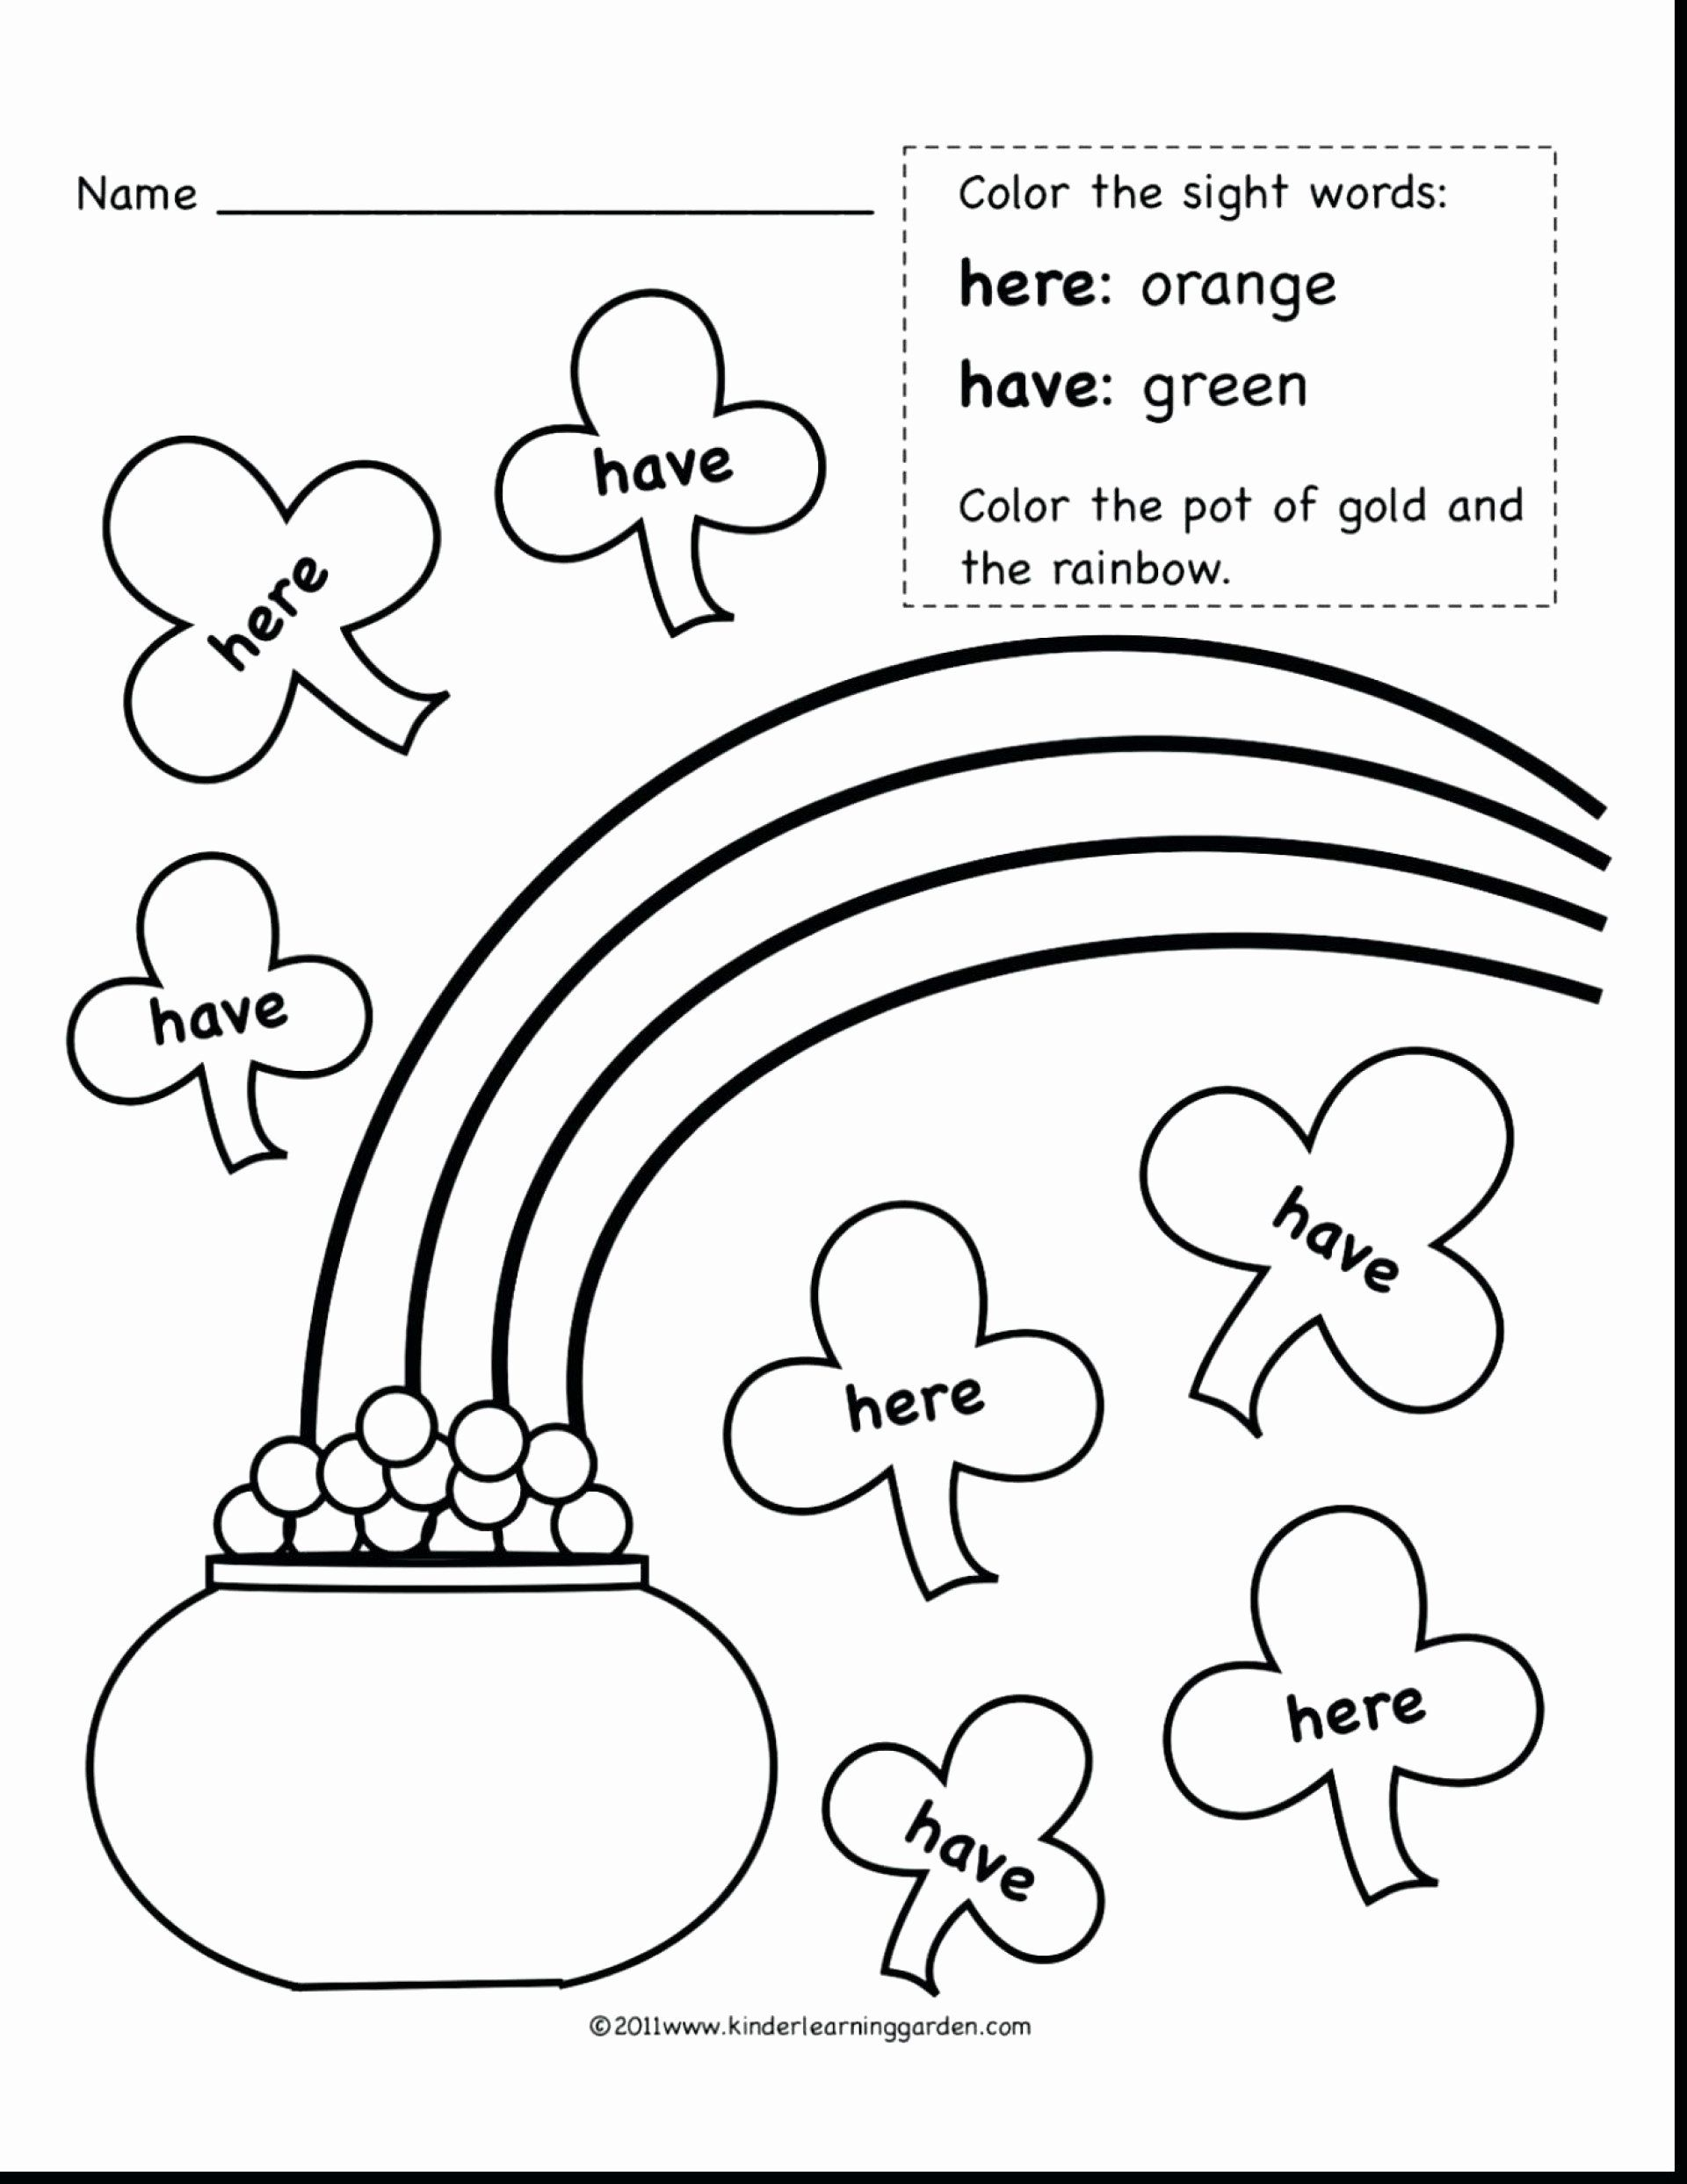 Coloring Pages For Third Graders Inspirational 015 2nd Grade Sight Words Printable For Word Coloring P Sight Word Coloring Sight Words Kindergarten Sight Words